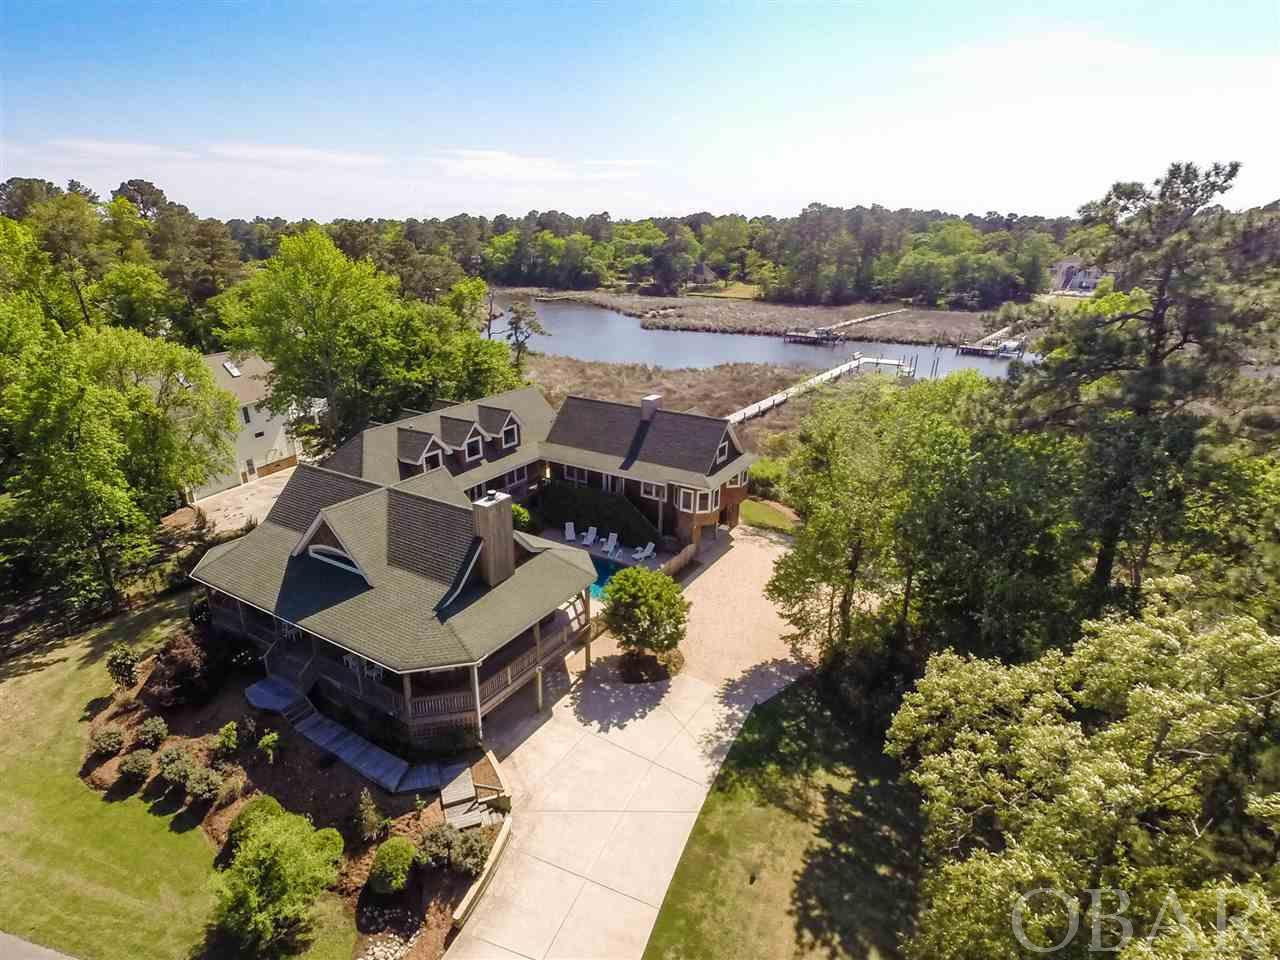 19 Ginguite Trail Lot 57A, Southern Shores, NC 27949